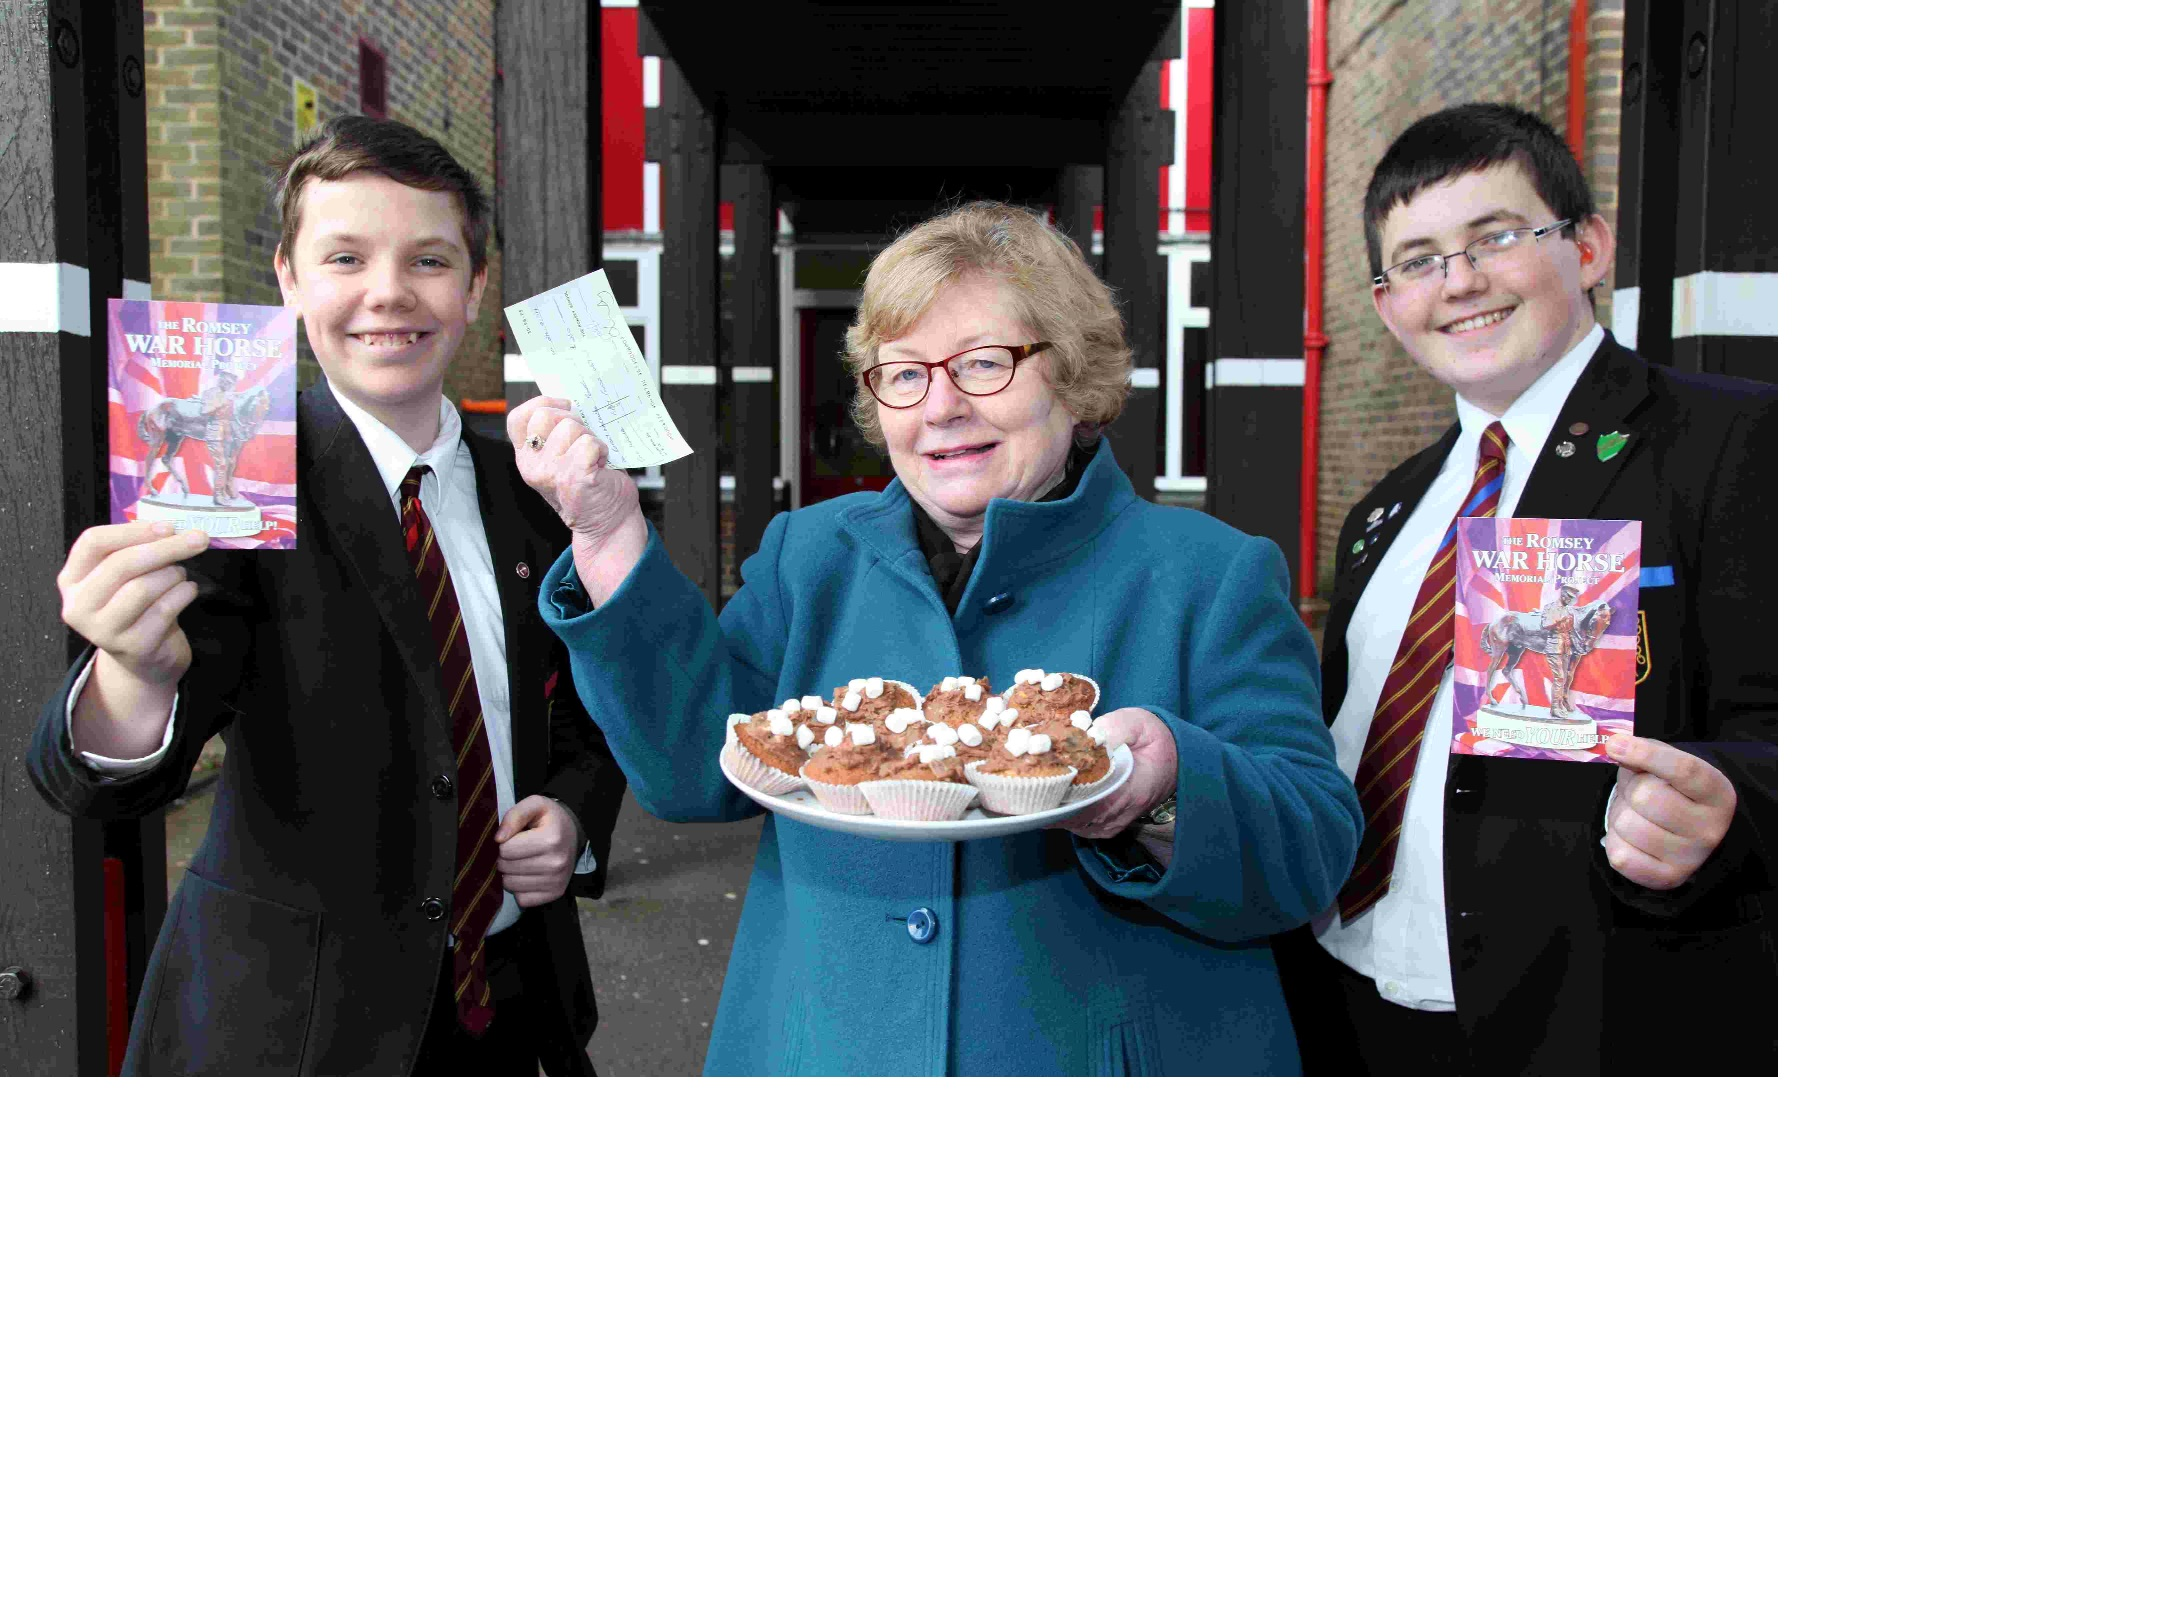 Dorothy Baverstock with Matthew Wakeham, 12, and Sam Egerton-Kemp, 15, from Romsey School, who raised money for the Romsey War Horse project with